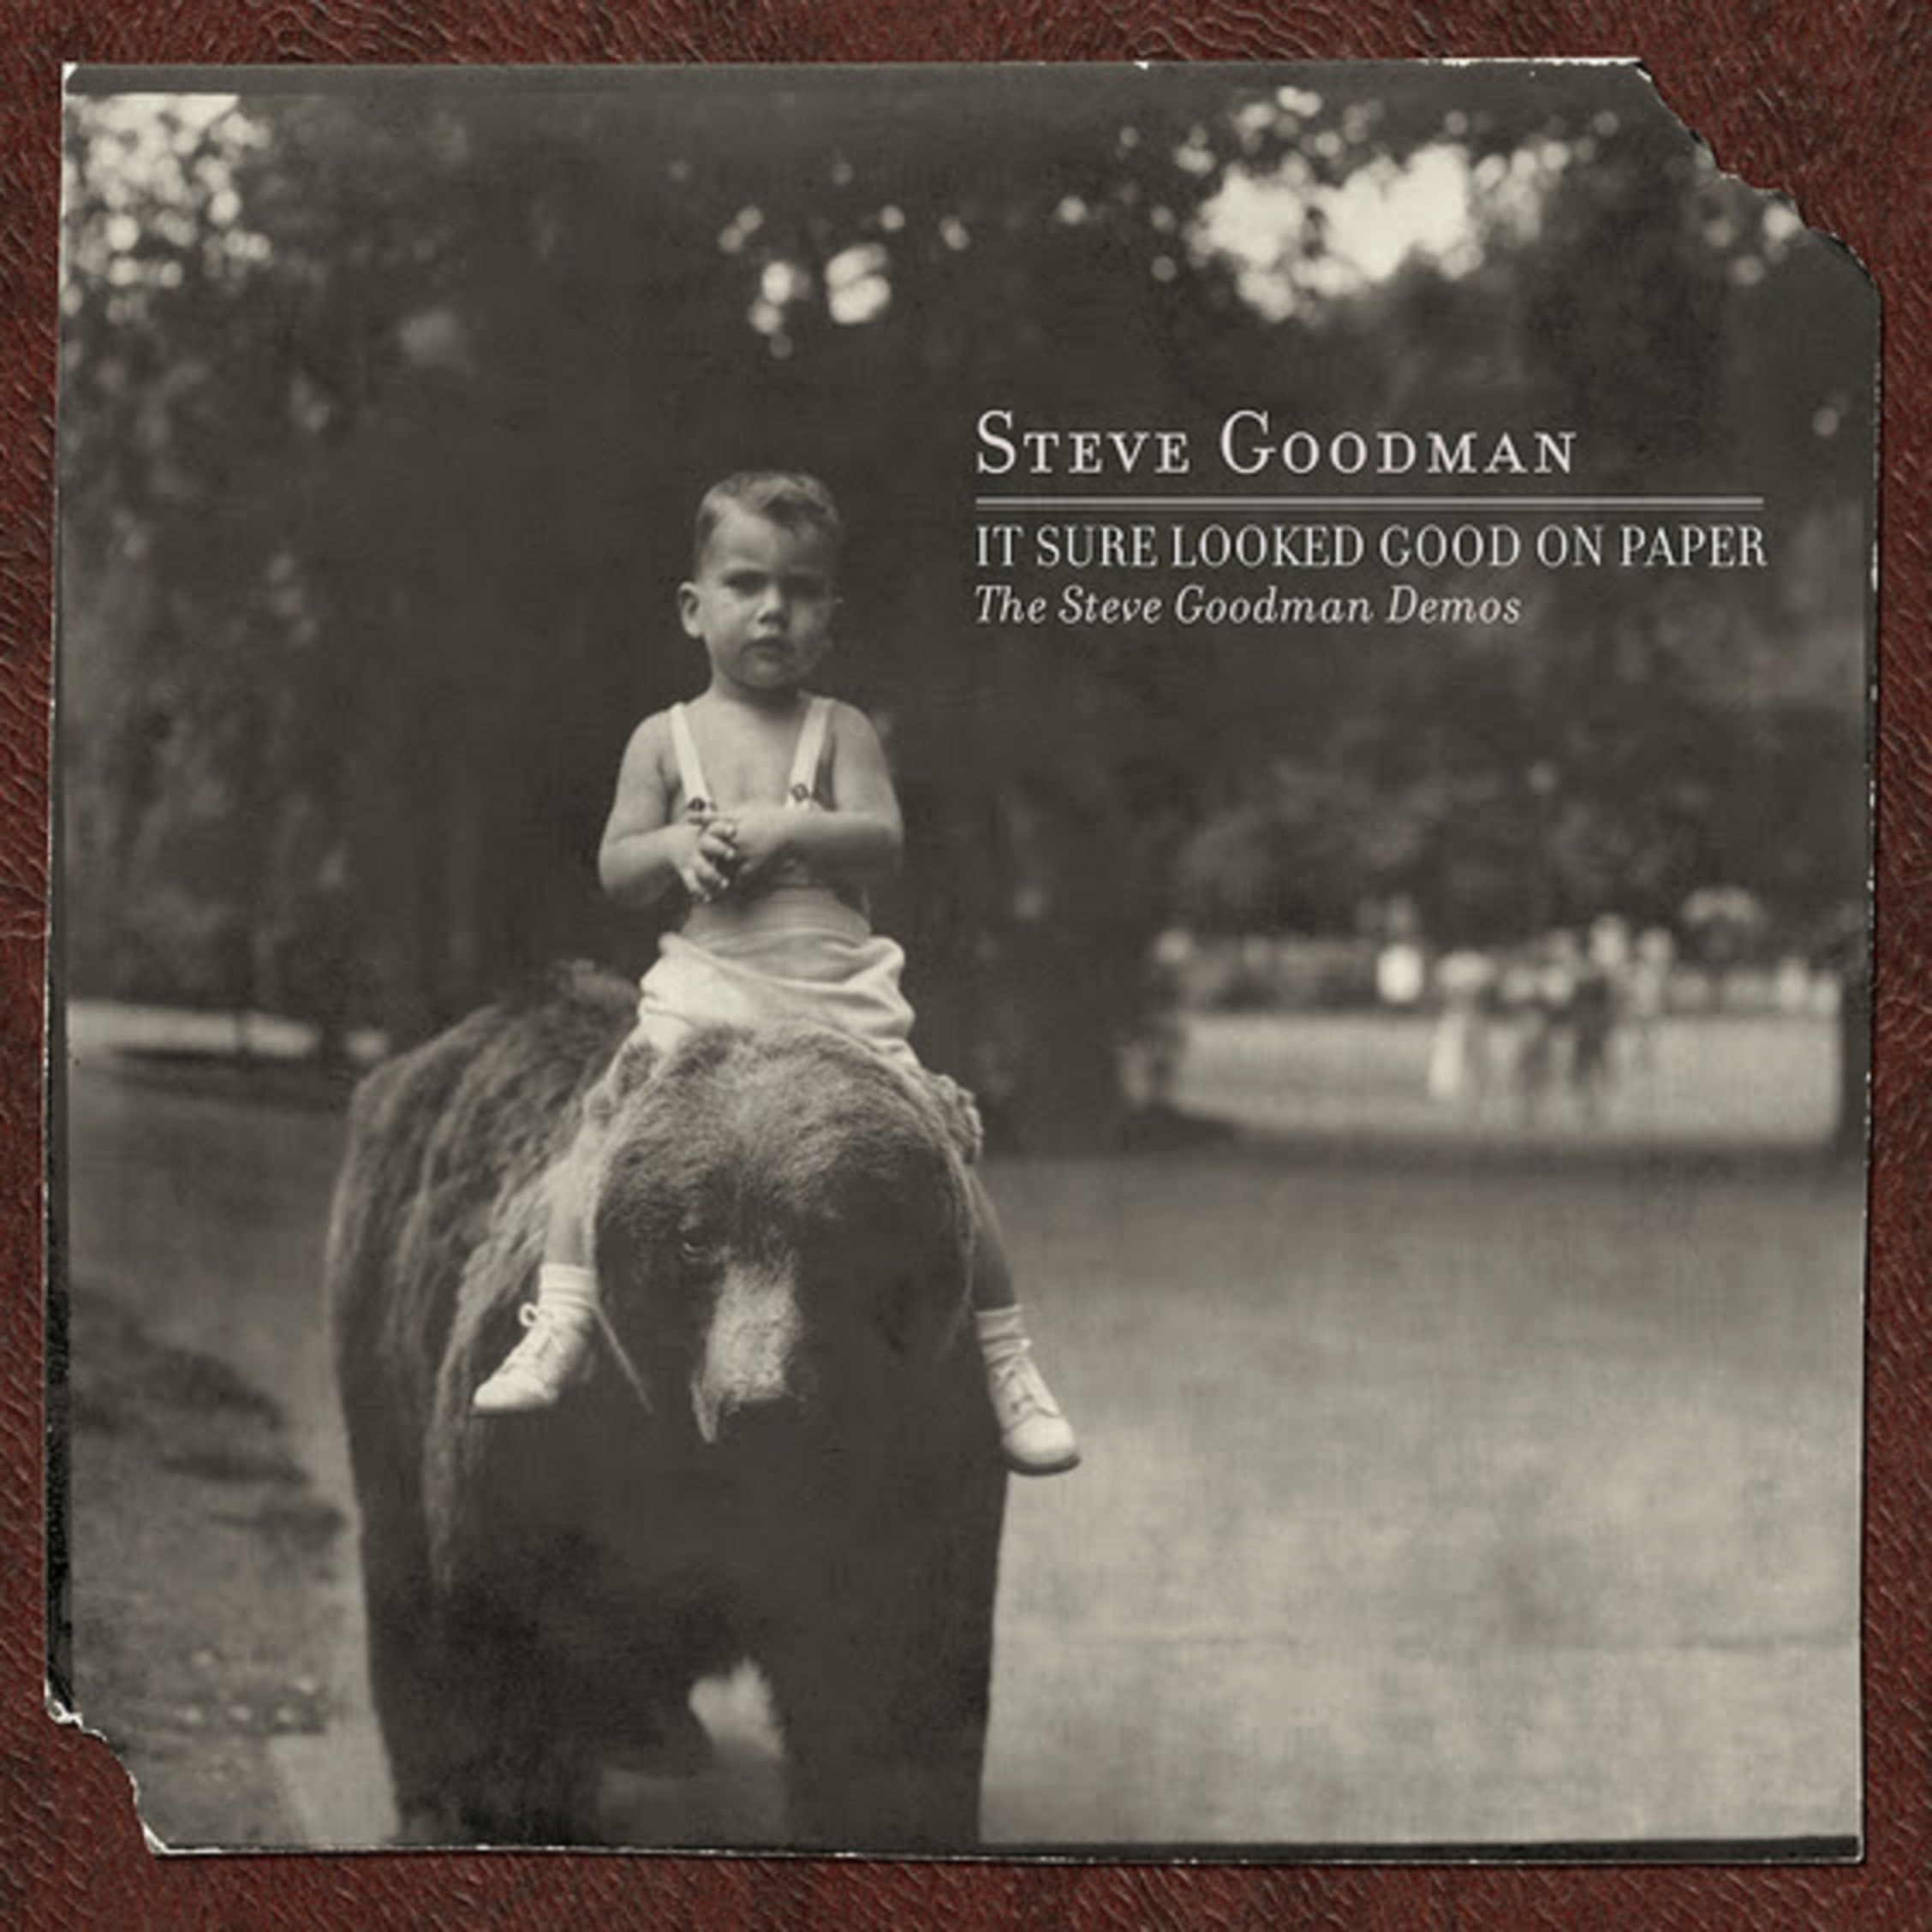 Steve Goodman unheard music coming from Omnivore on May 14th